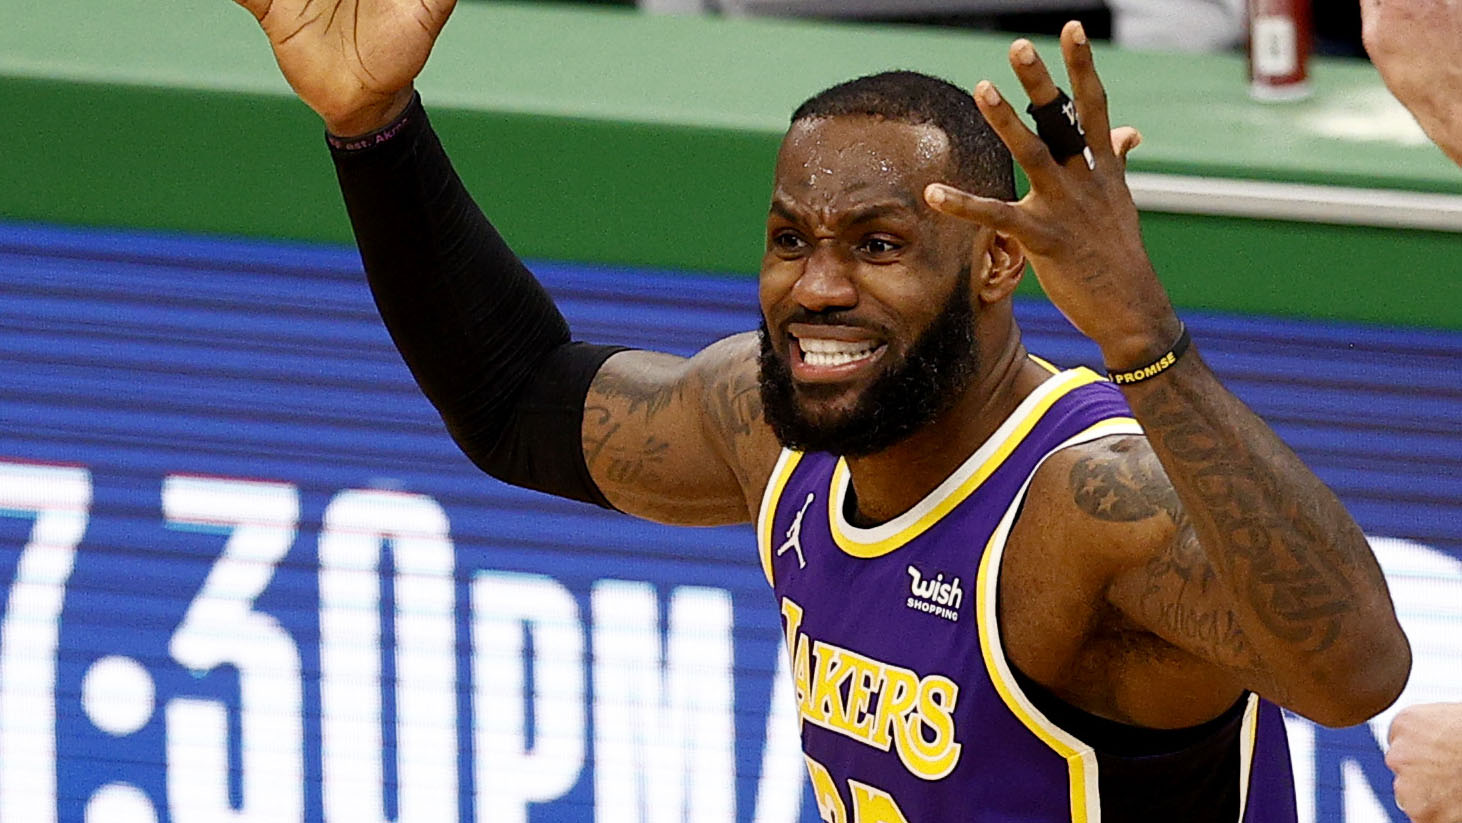 Cop Who Mocked LeBron James Snags Book Deal, Heads Back To Work